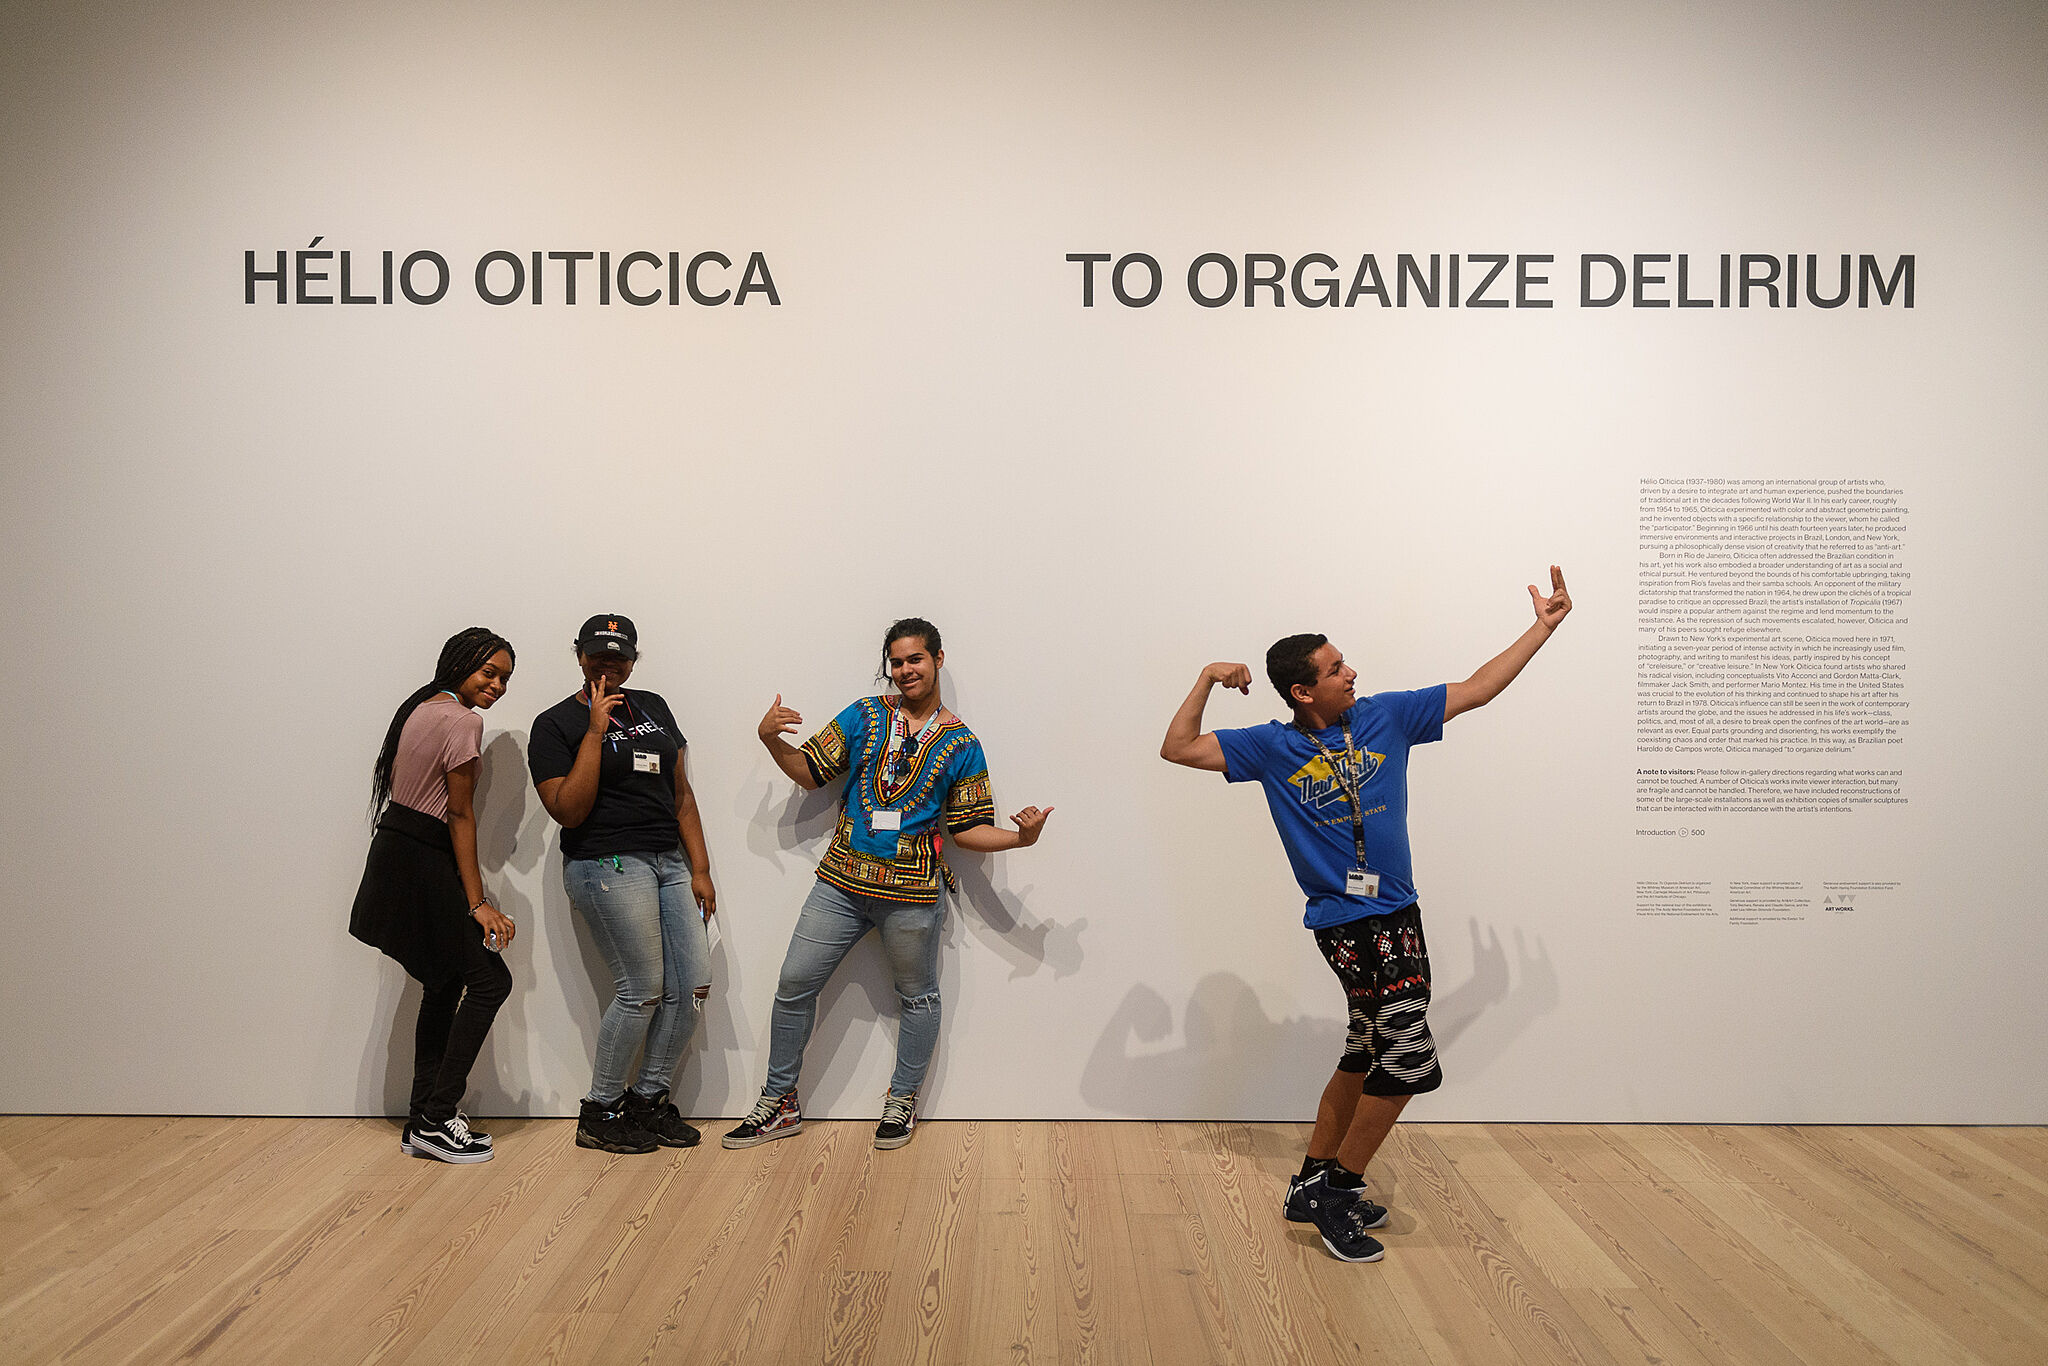 teens posing in front of Helio Oiticica exhibition sign